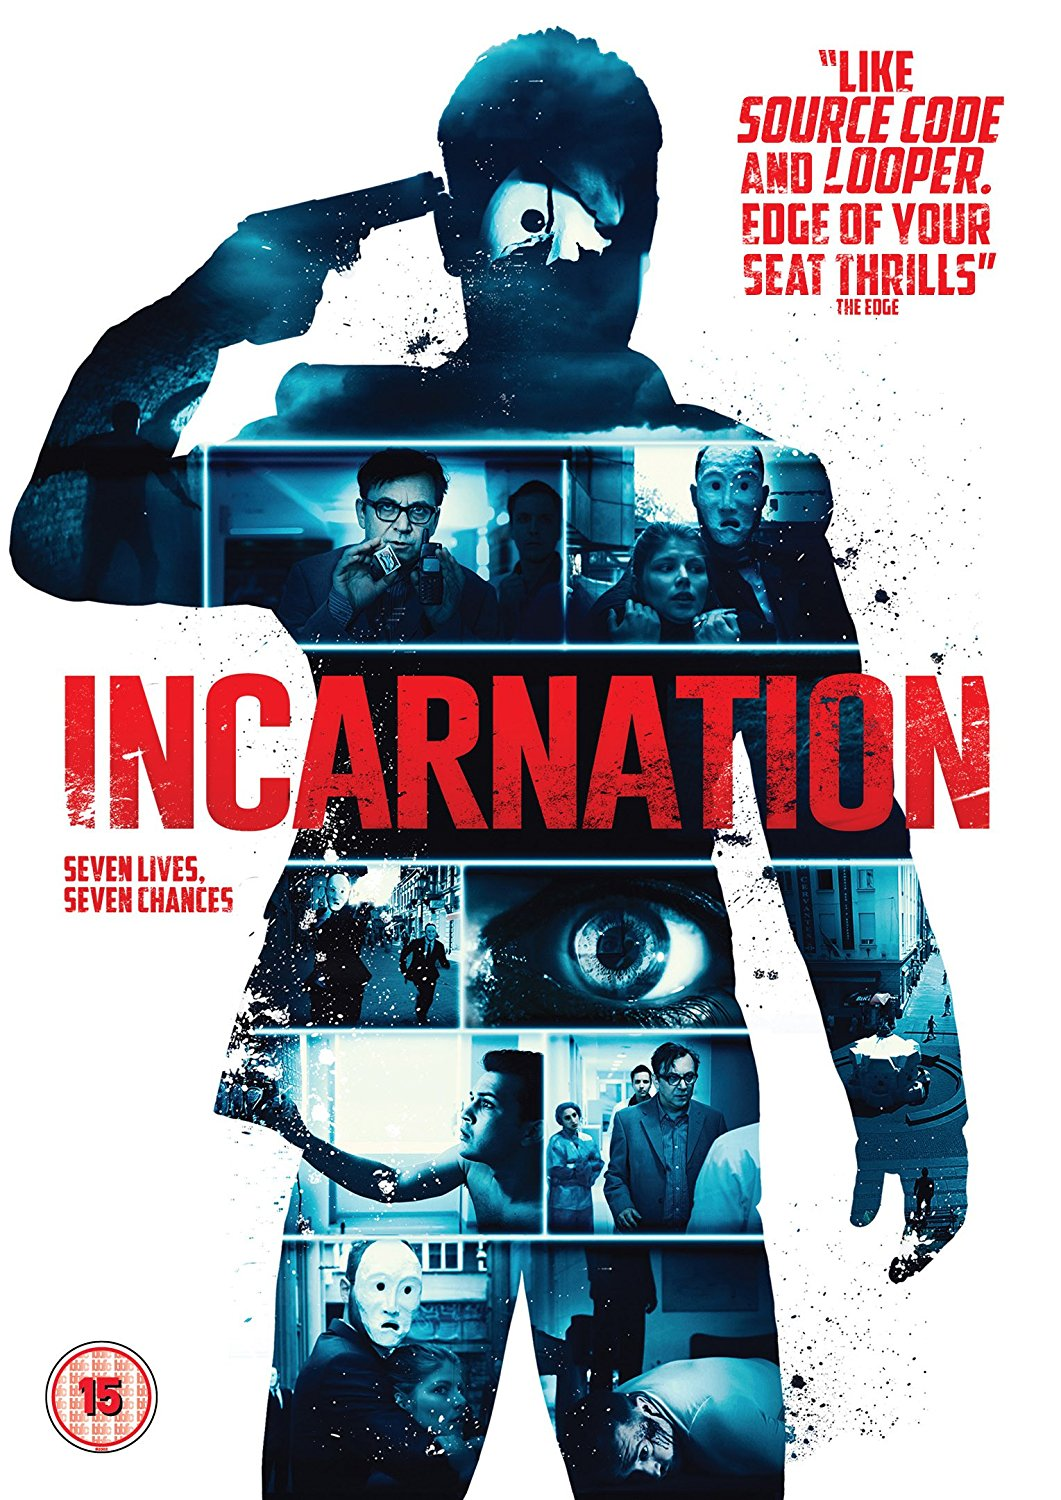 Incarnation DVD review: die, respawn, repeat